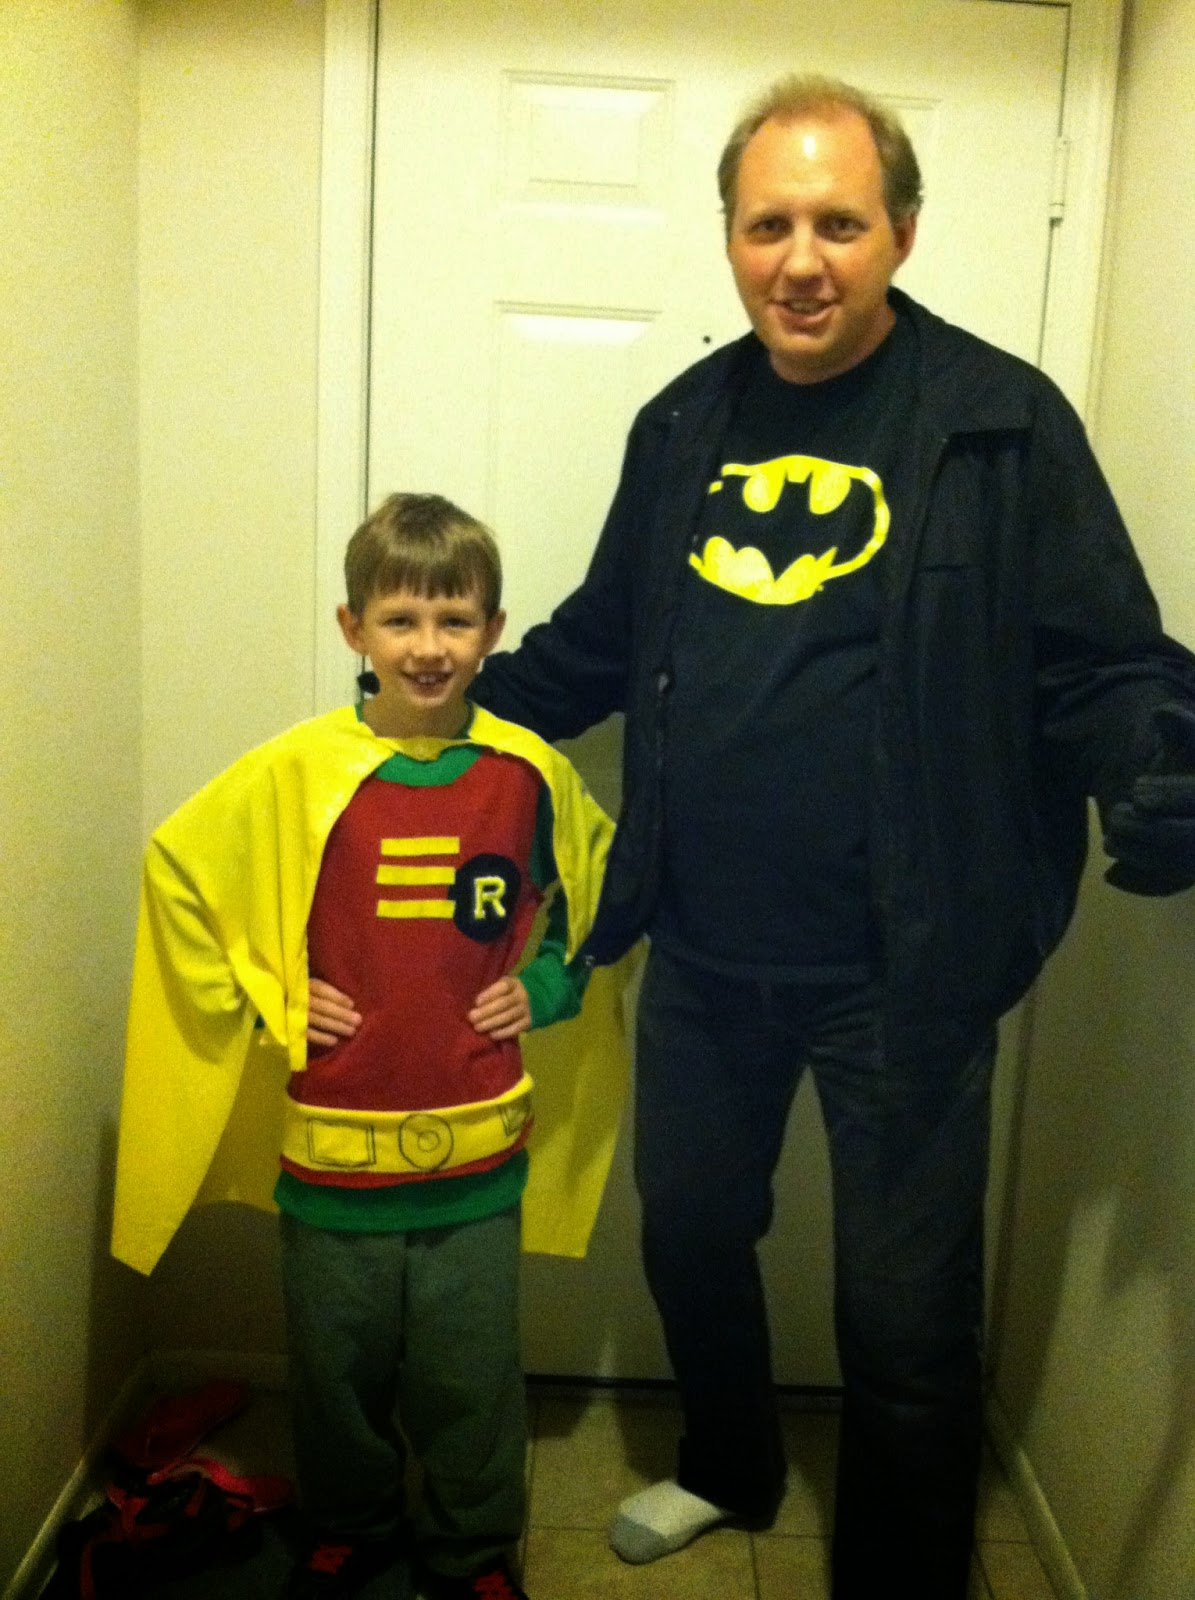 Daniel as Robin, Dad as Batman!